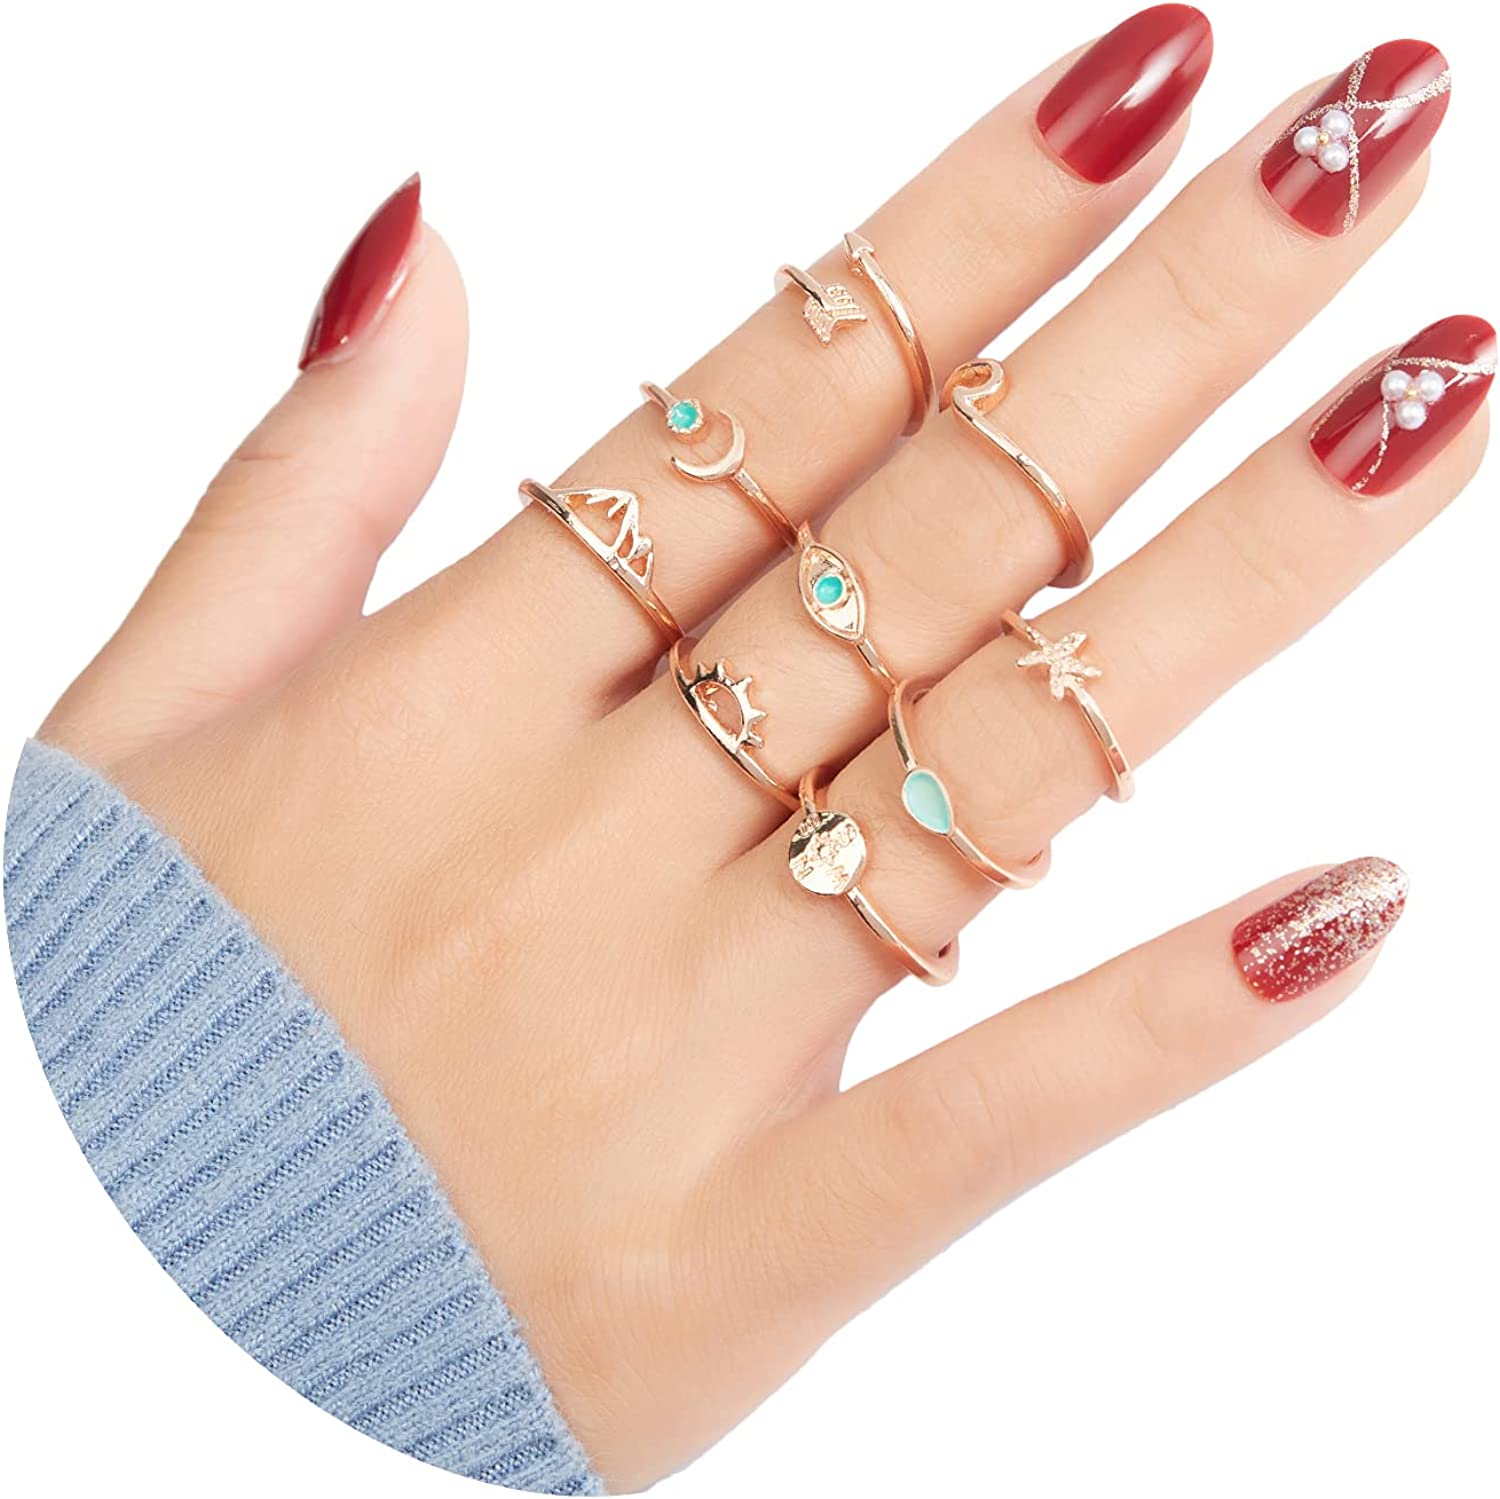 9 Pcs Gold Stackable Rings for Women Knuckle Stacking Ring Set for Teen Girls Adjustable Finger Rings as Trendy Jewelry Gifts for Teens Girl and Women